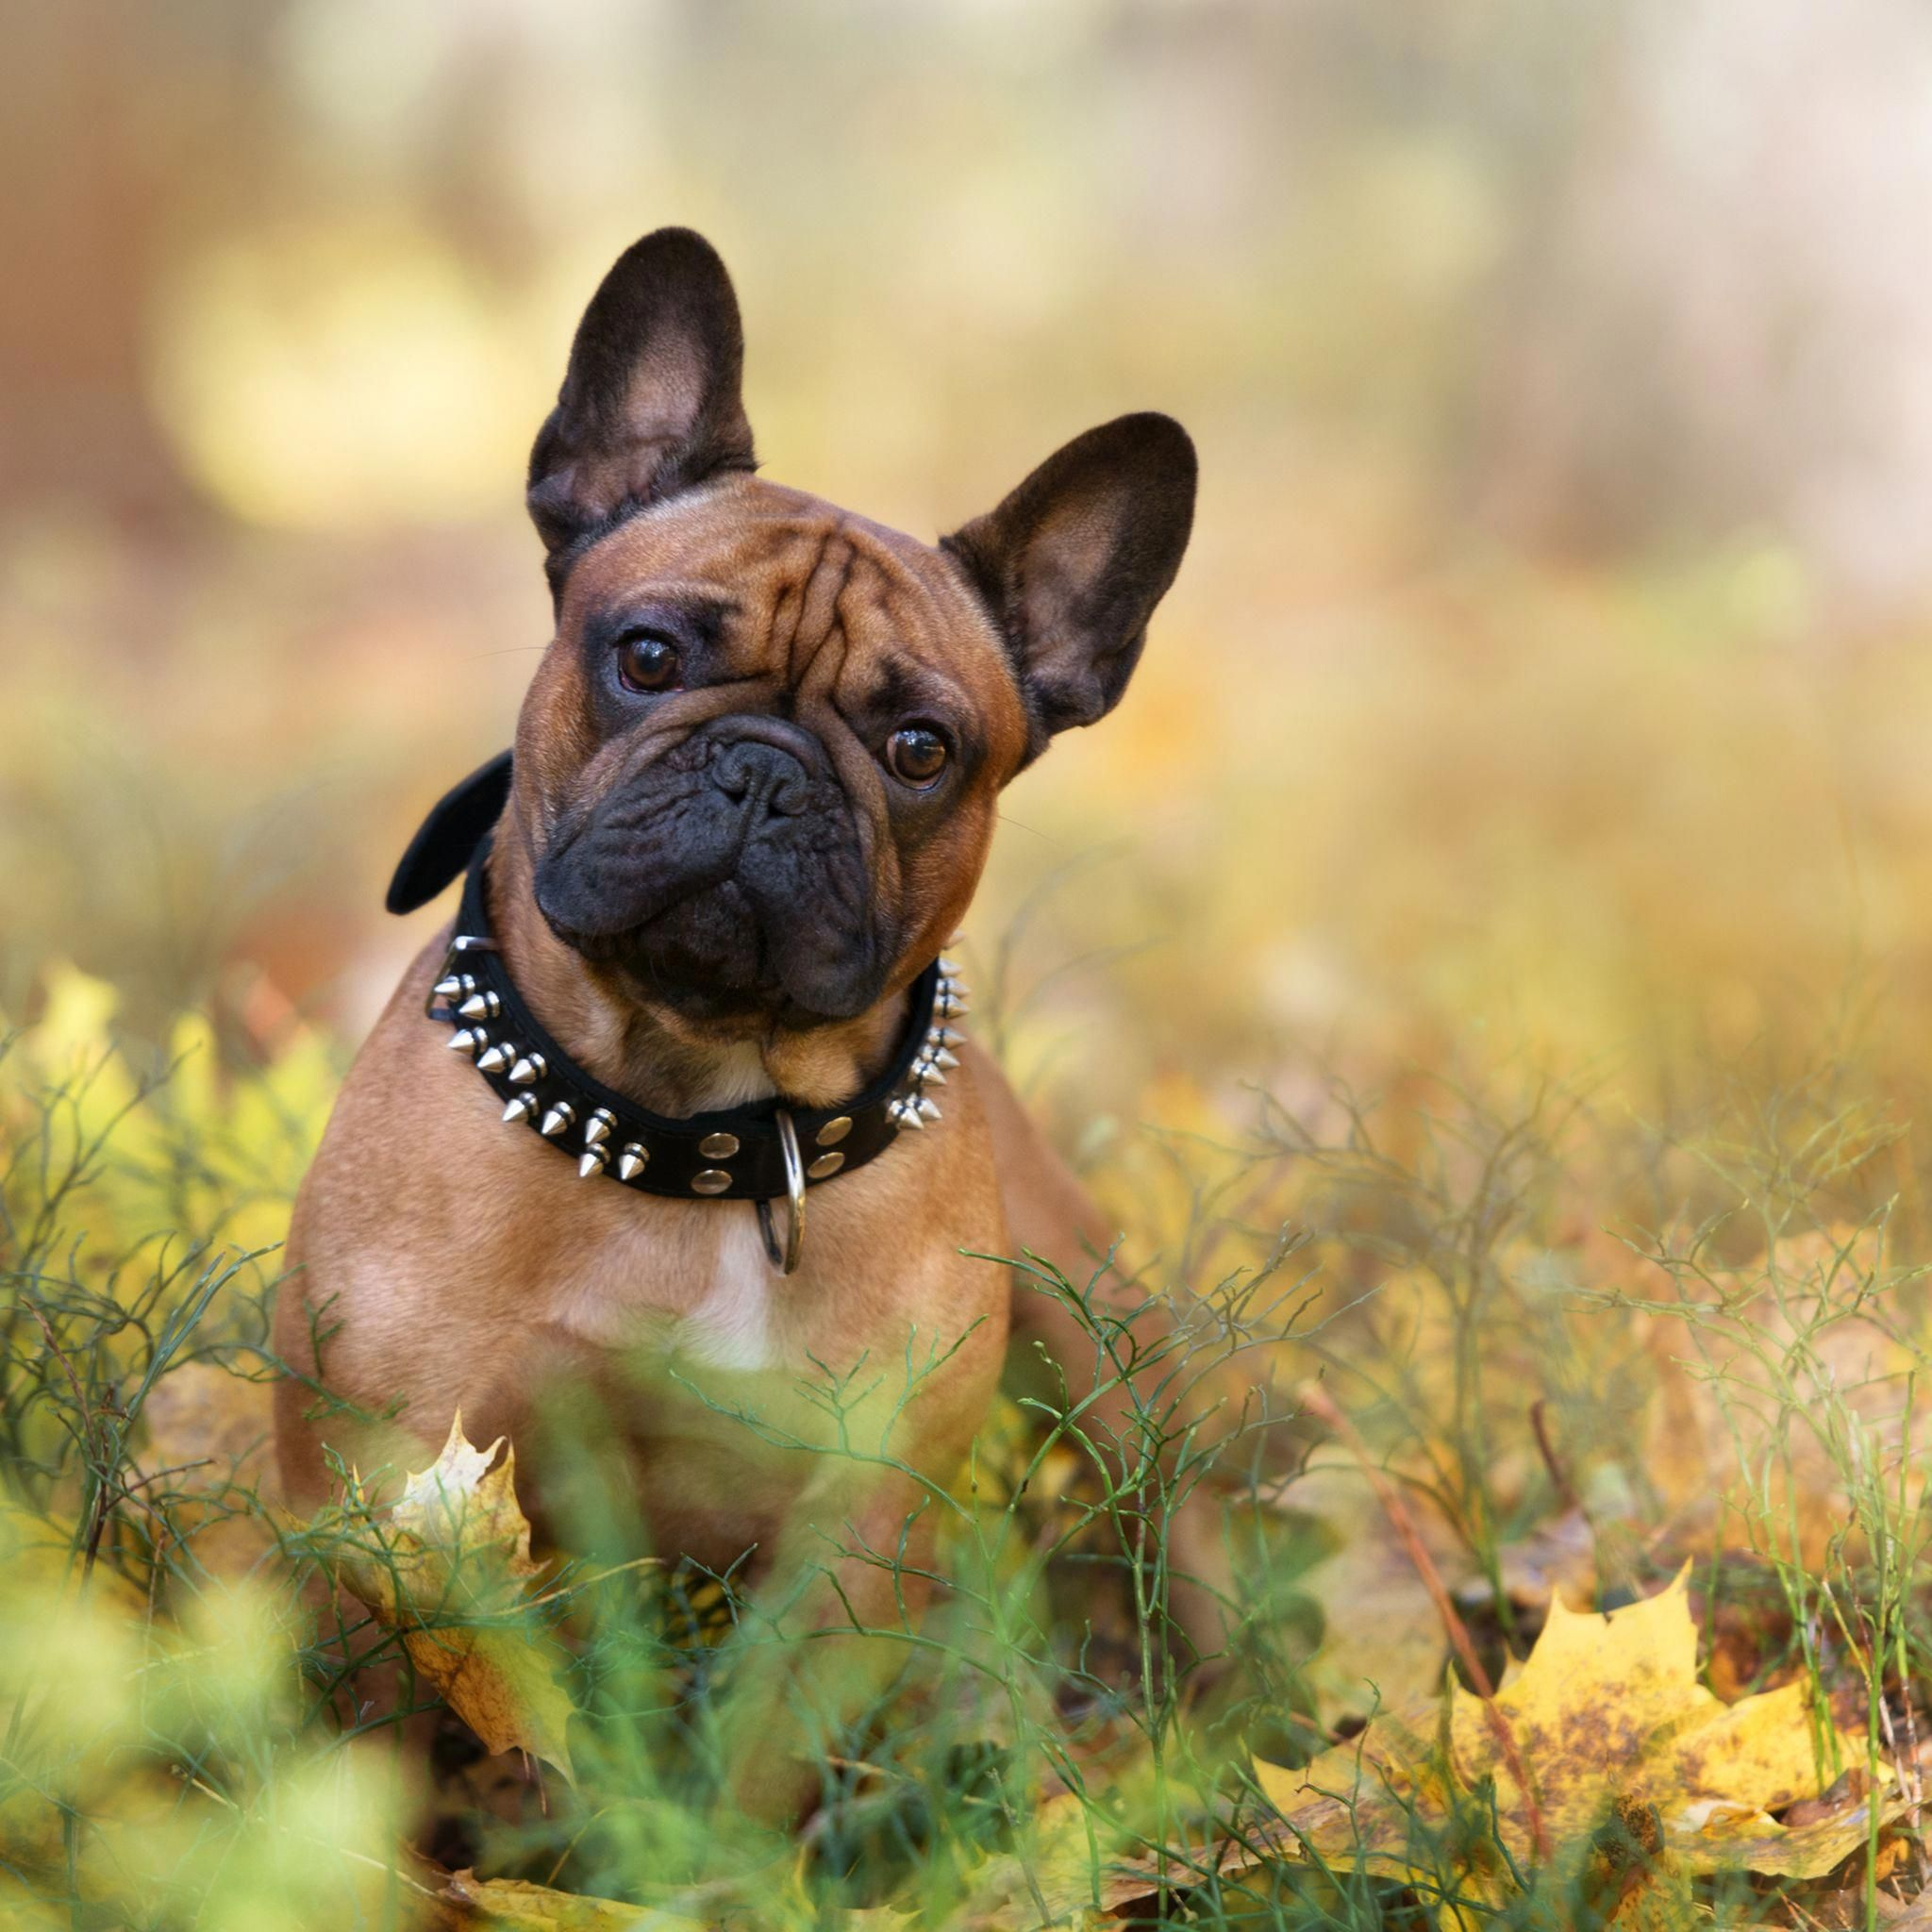 French Bulldog Playful And Smart In 2020 White French Bulldog Puppies French Bulldog Puppies Bulldog Puppies